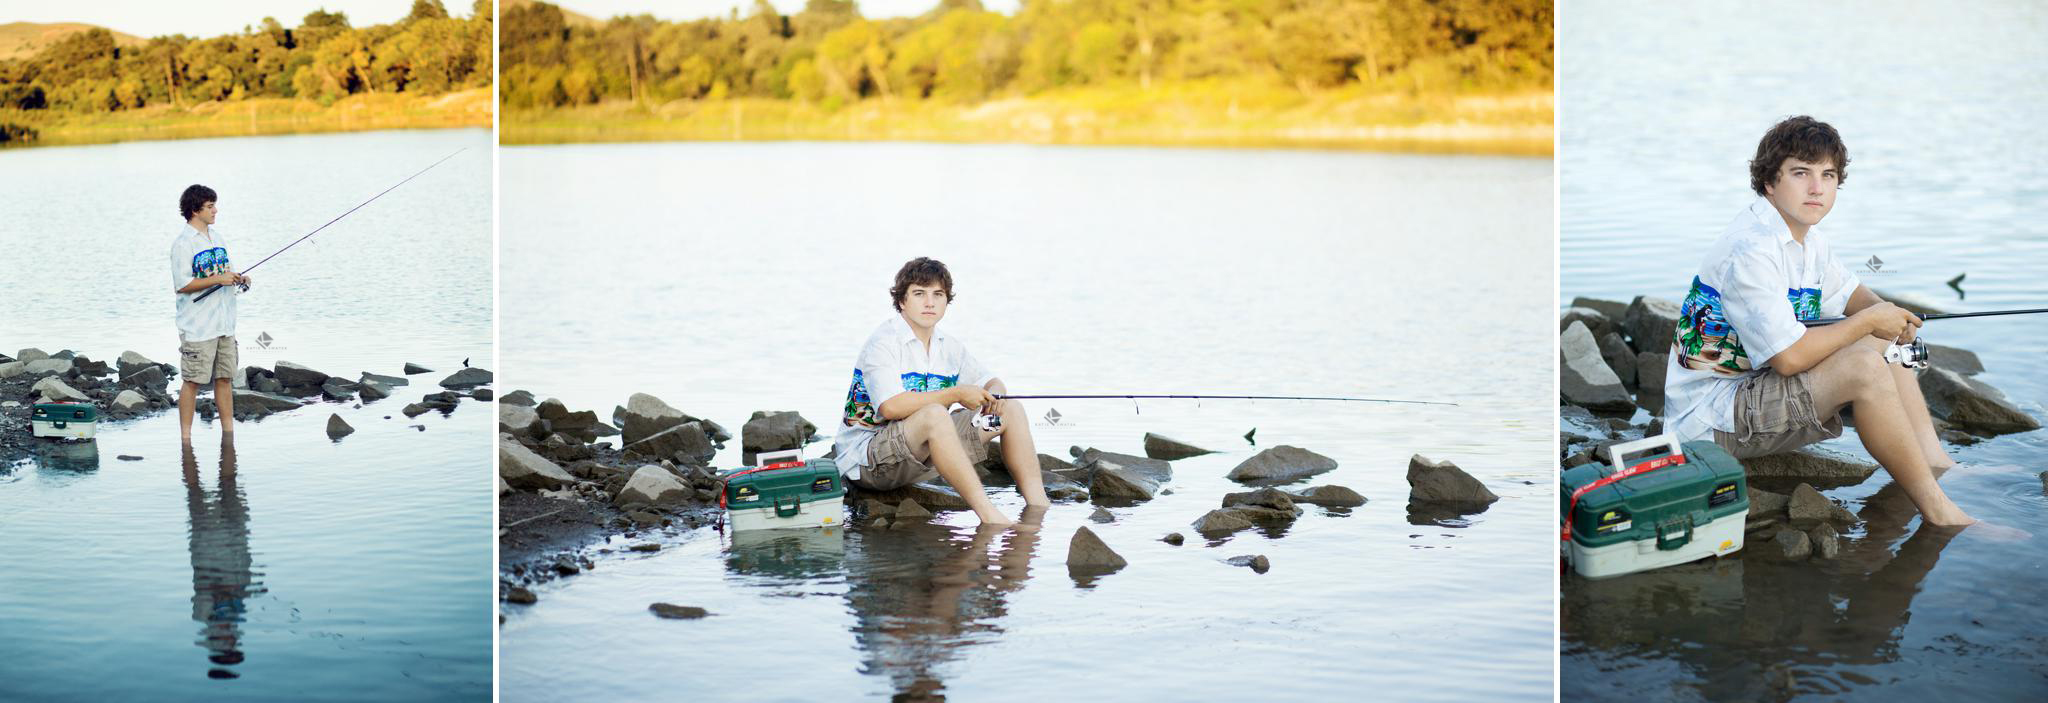 Brunette senior boy in Hawaiian shirt standing in the river with a fishing pole and tackle box